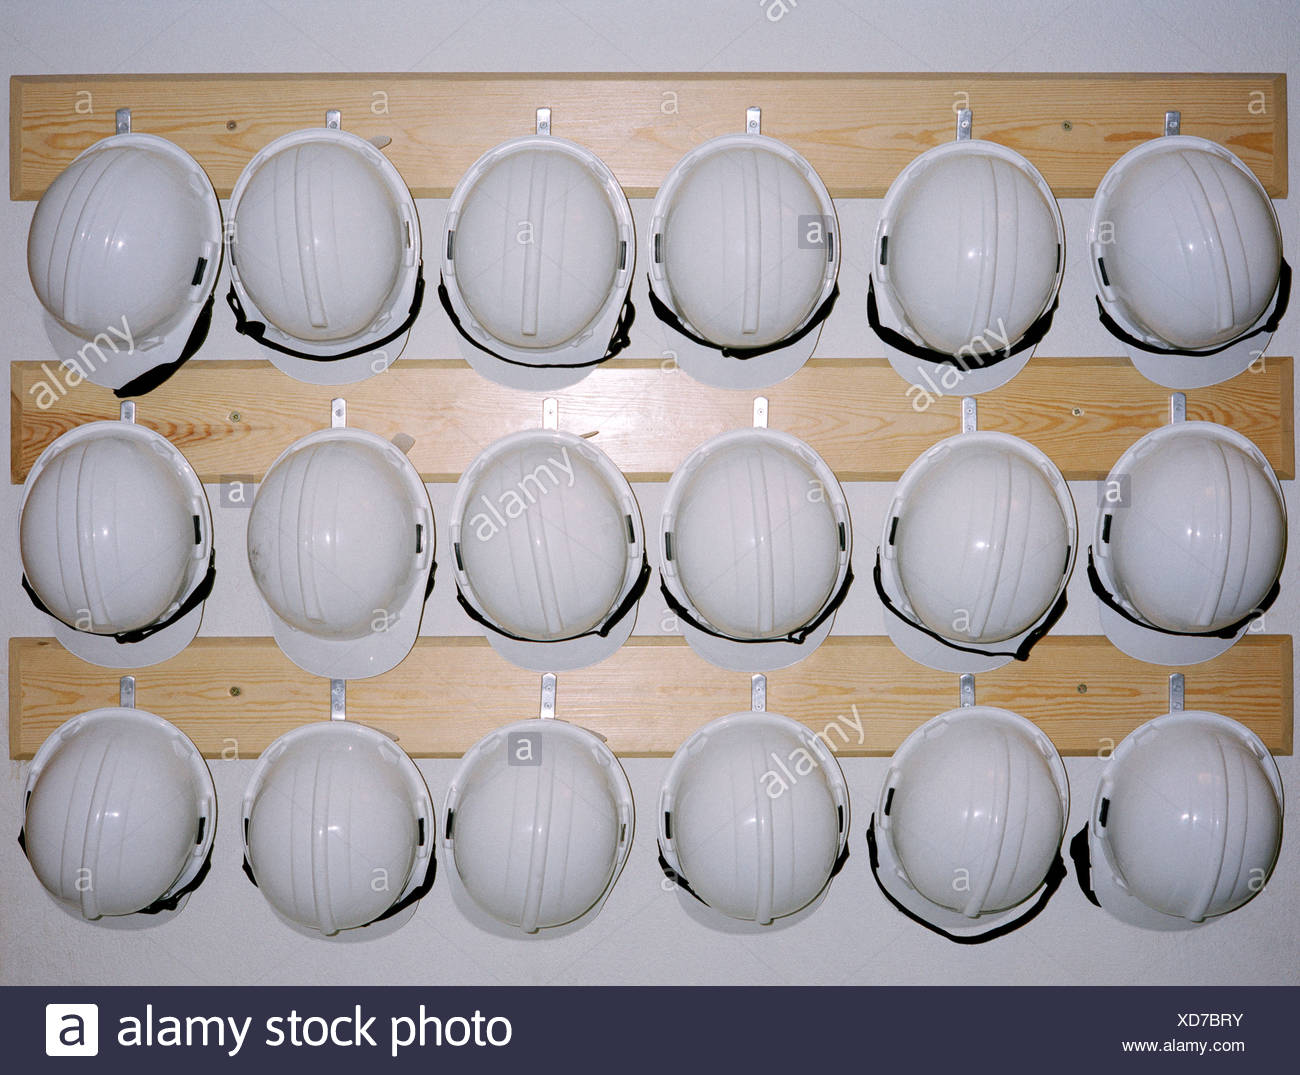 Rows of hardhats - Stock Image